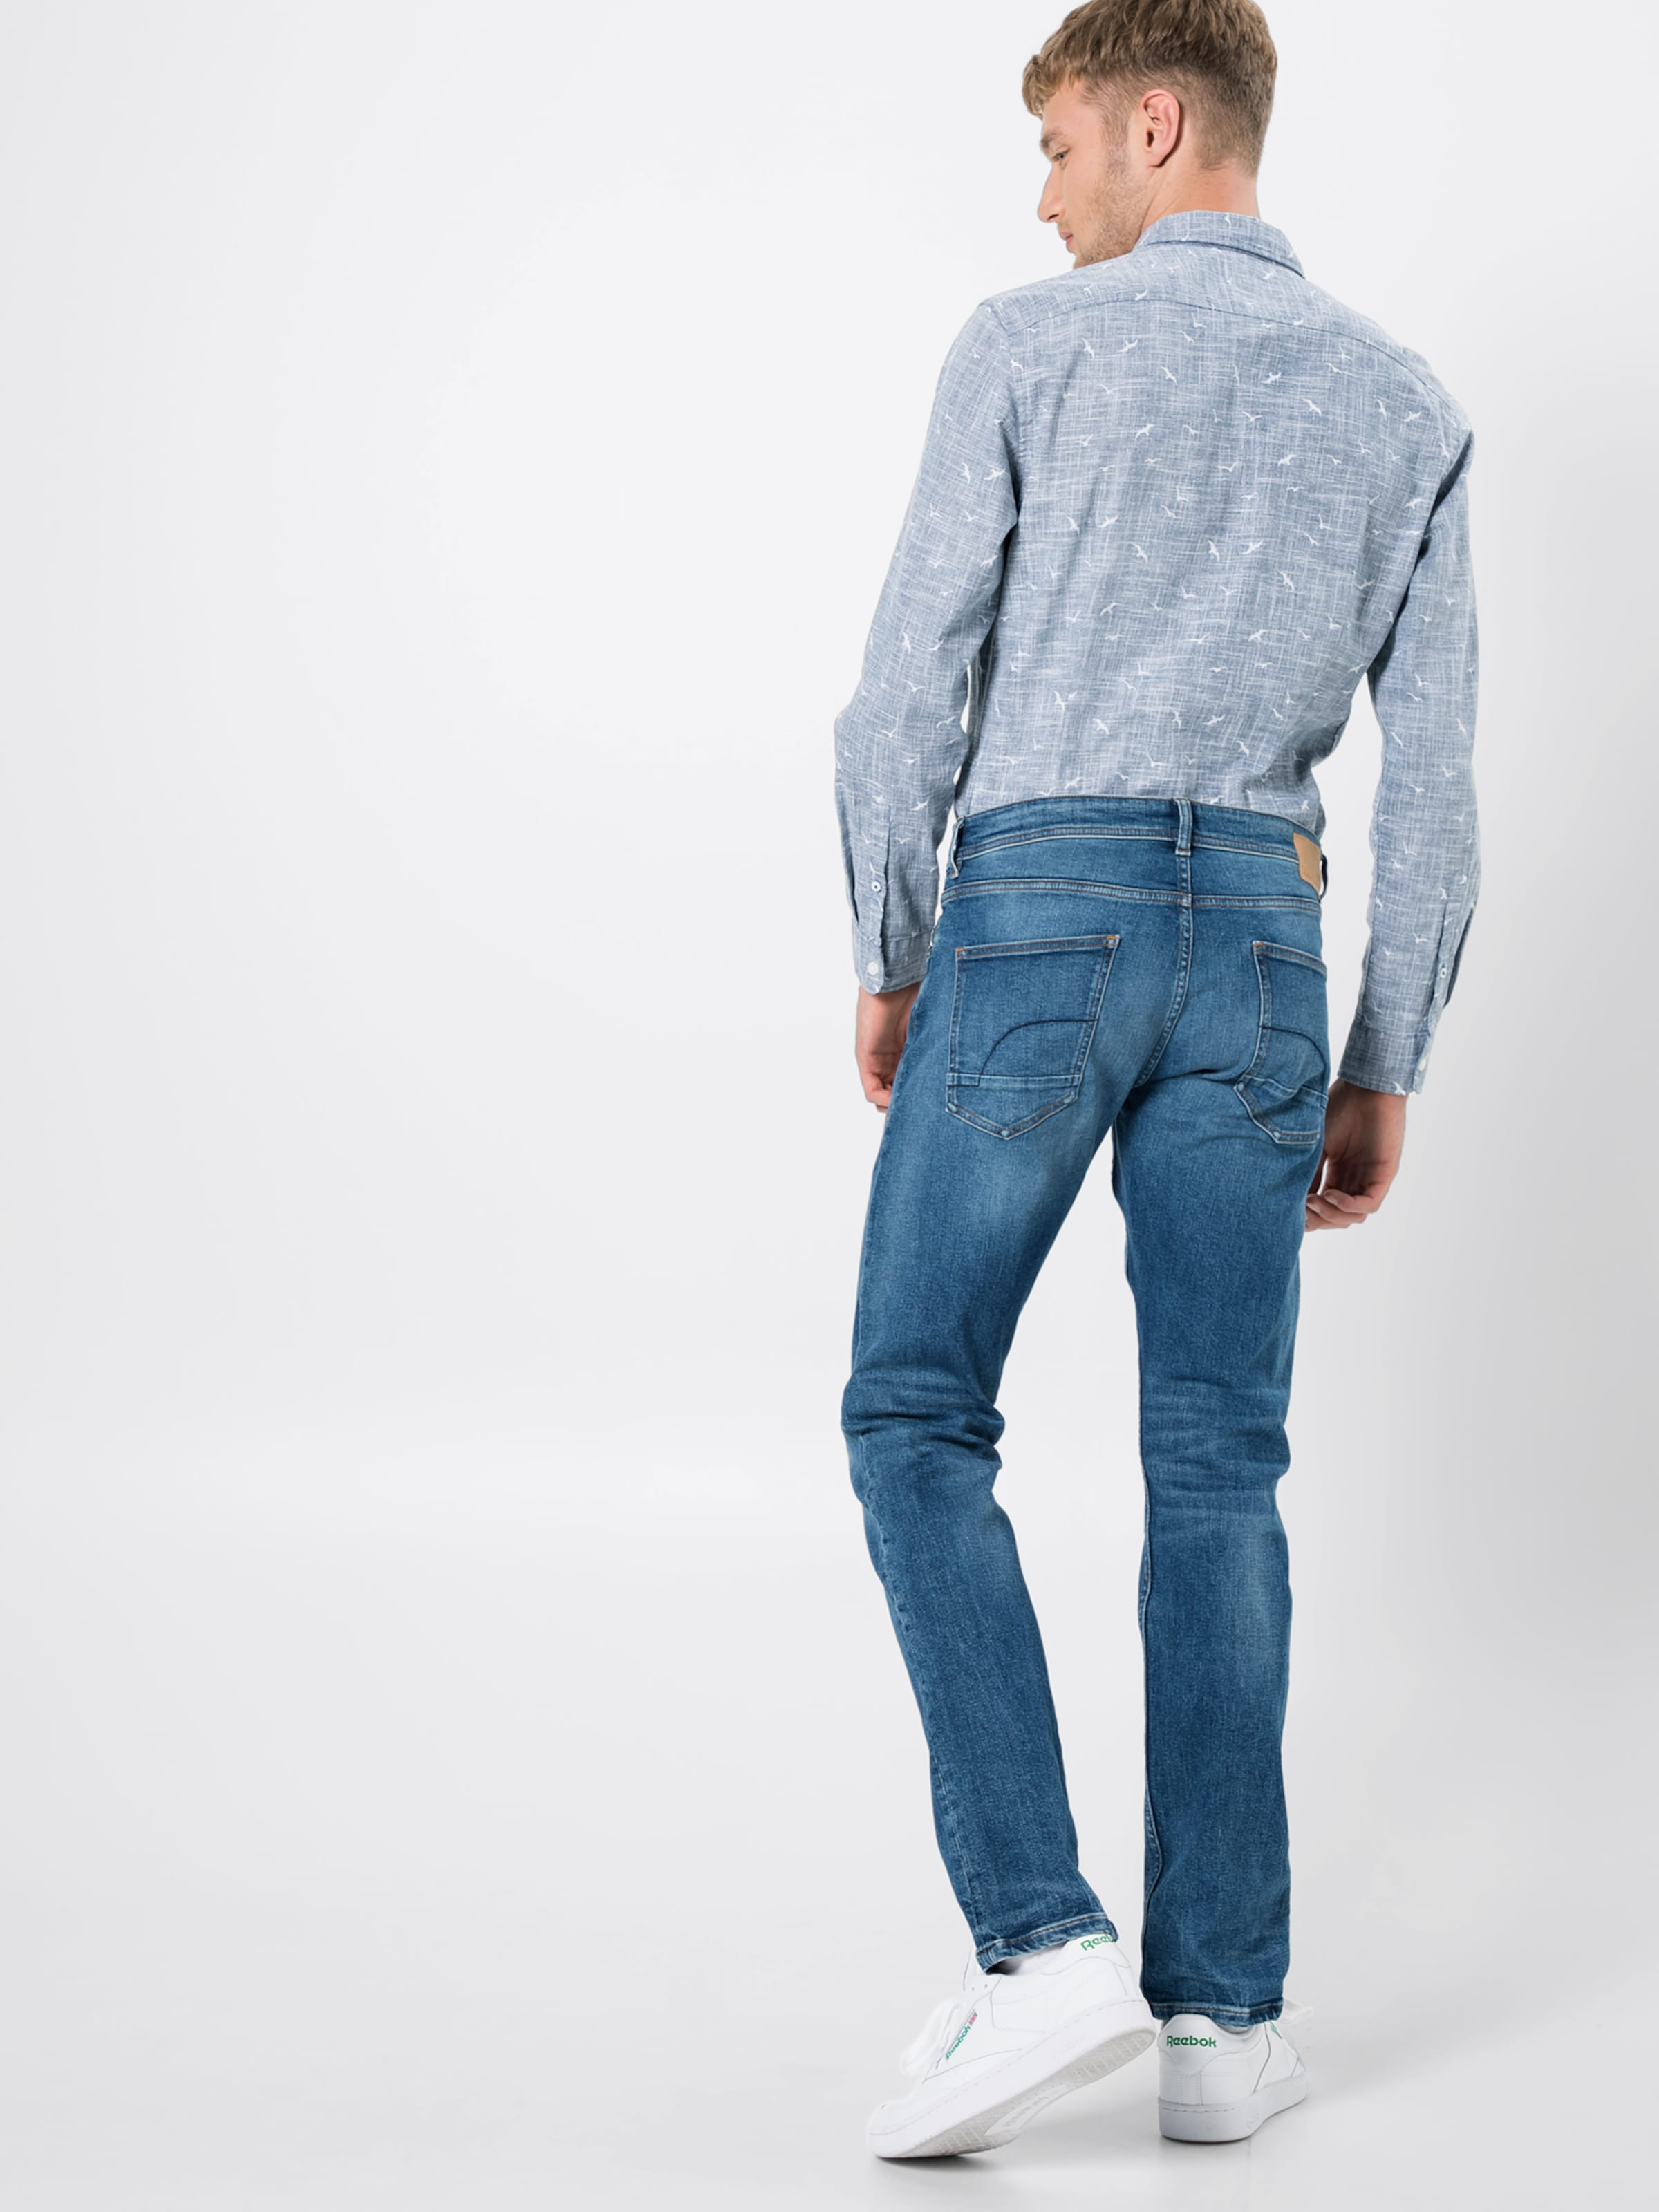 Denim En Bleu 5 Edc 'ocs Jean Slim By Esprit Pants Pkt Denim' EDH9W2I